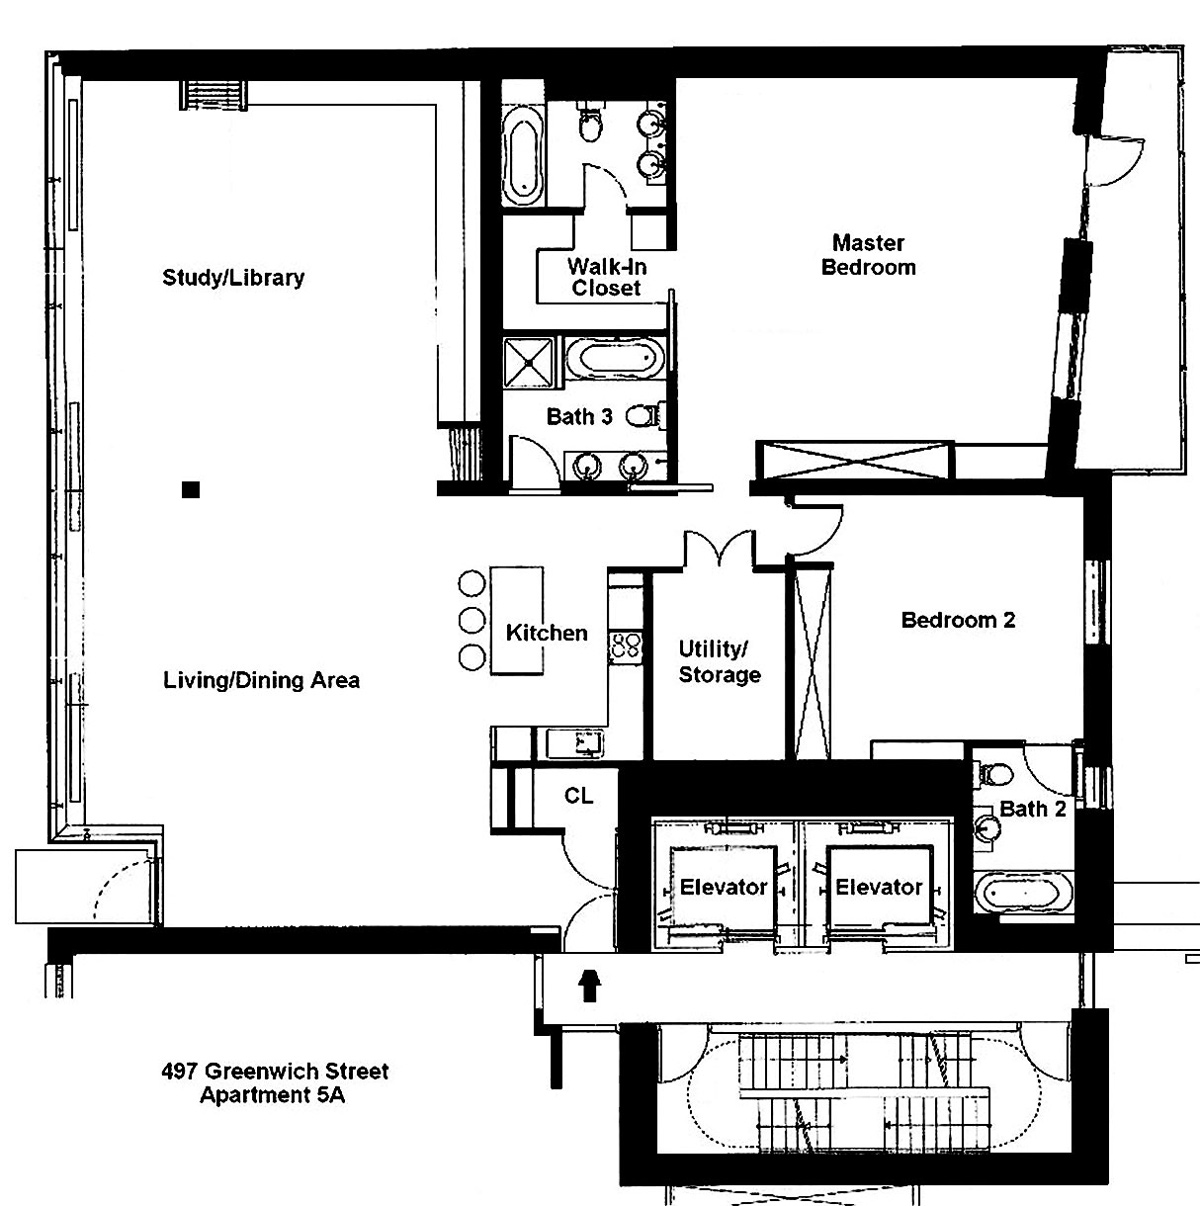 floor plan stylish apartment in new york city ForApartment Floor Plans New York City